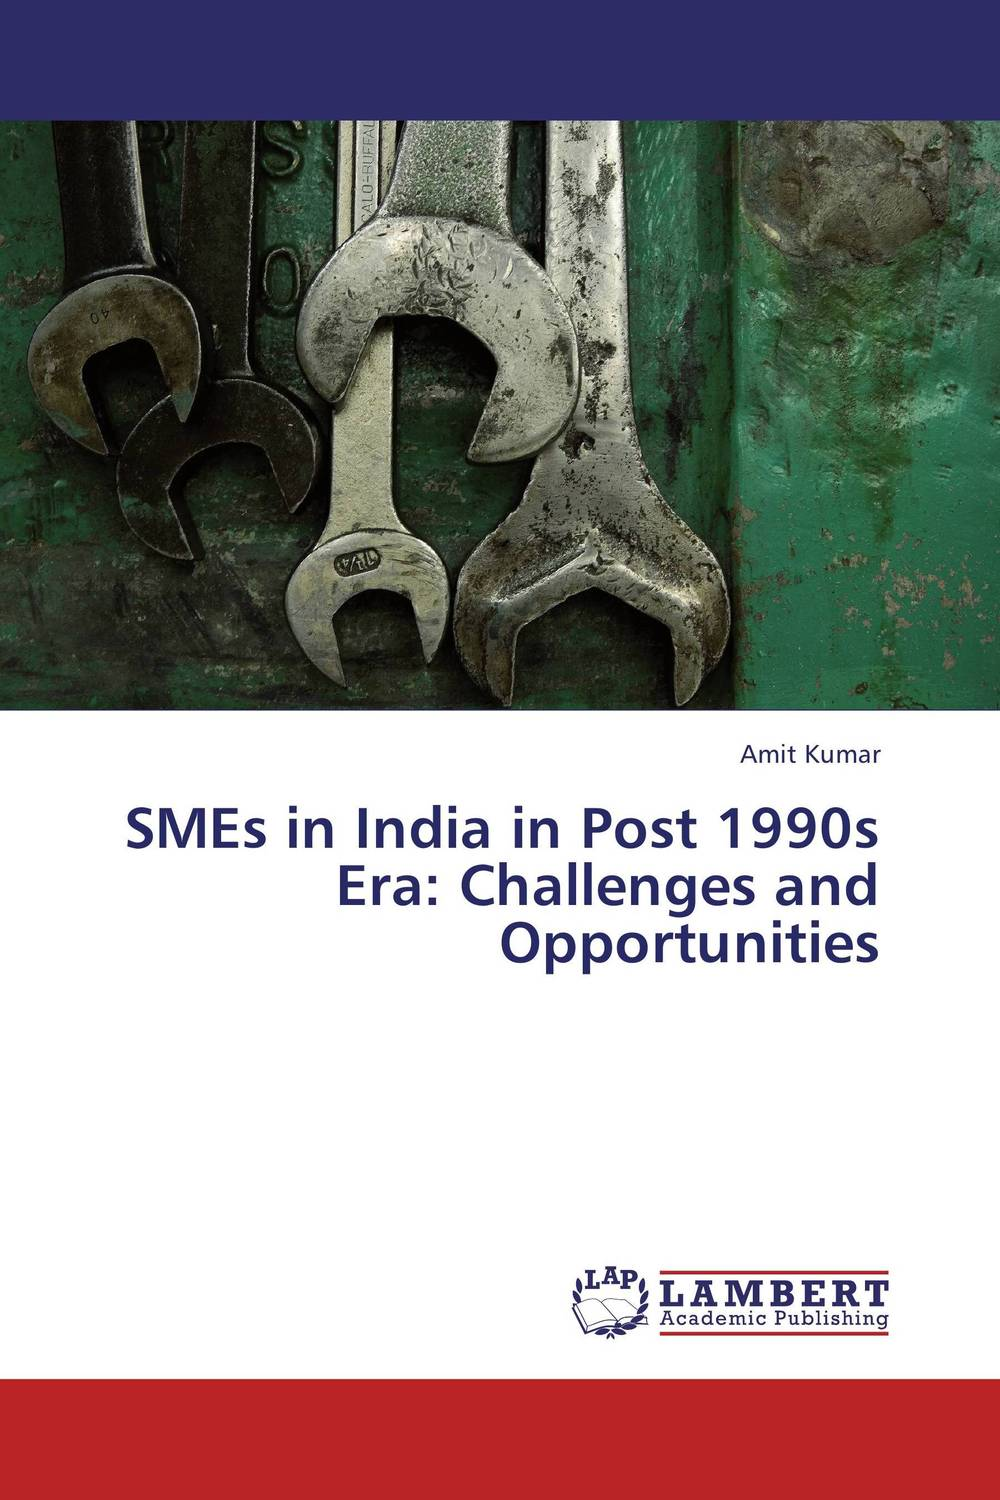 SMEs in India in Post 1990s Era: Challenges and Opportunities challenges and opportunities of indigenous church leaders in uganda